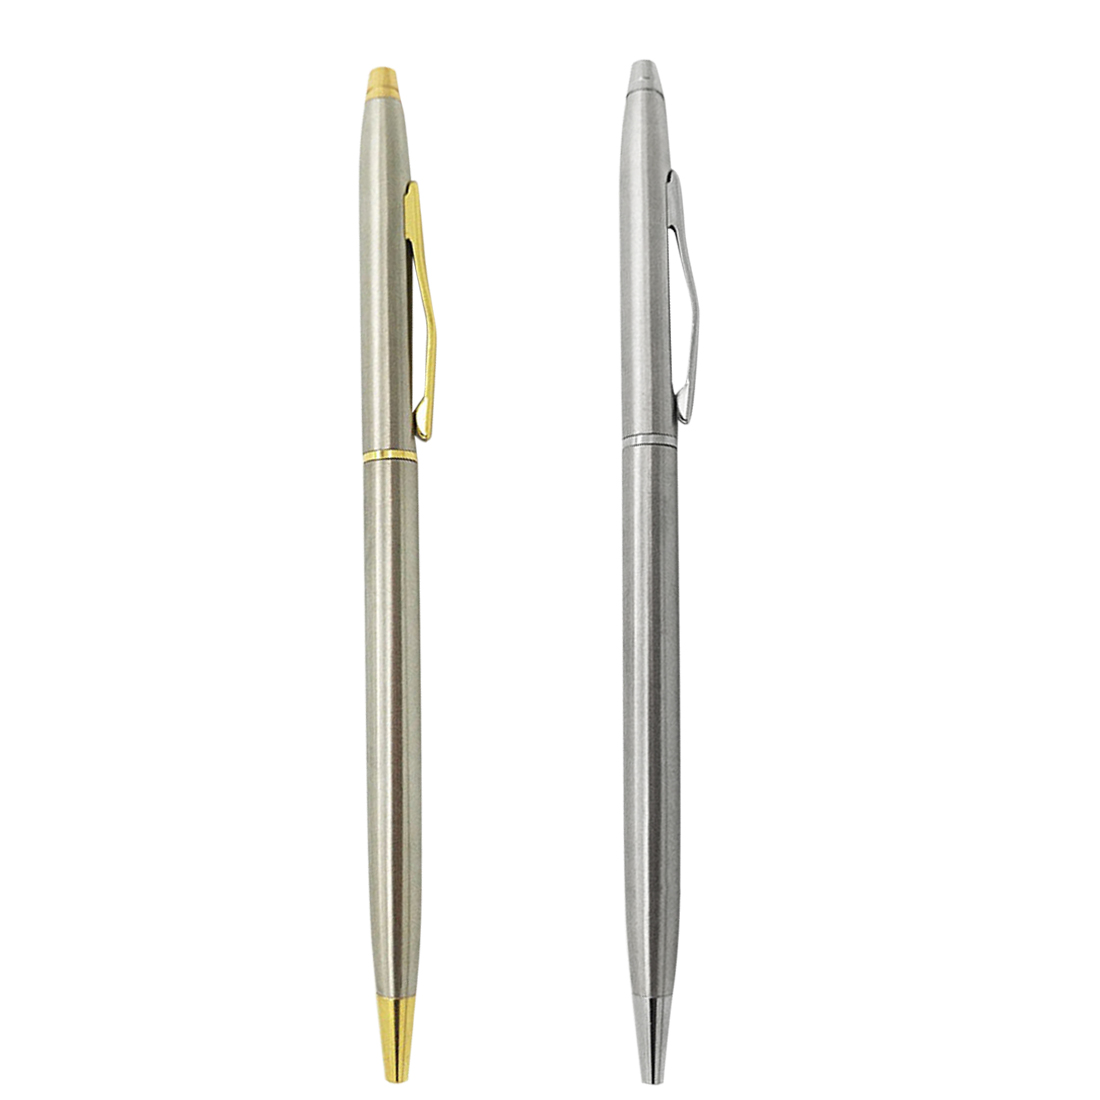 Reasonable Fangnymph Stainless Steel Rotating Metal Ballpoint Pen Stationery Ballpen 0.7mm Black Pen Office & School Supplies Ample Supply And Prompt Delivery Pens, Pencils & Writing Supplies